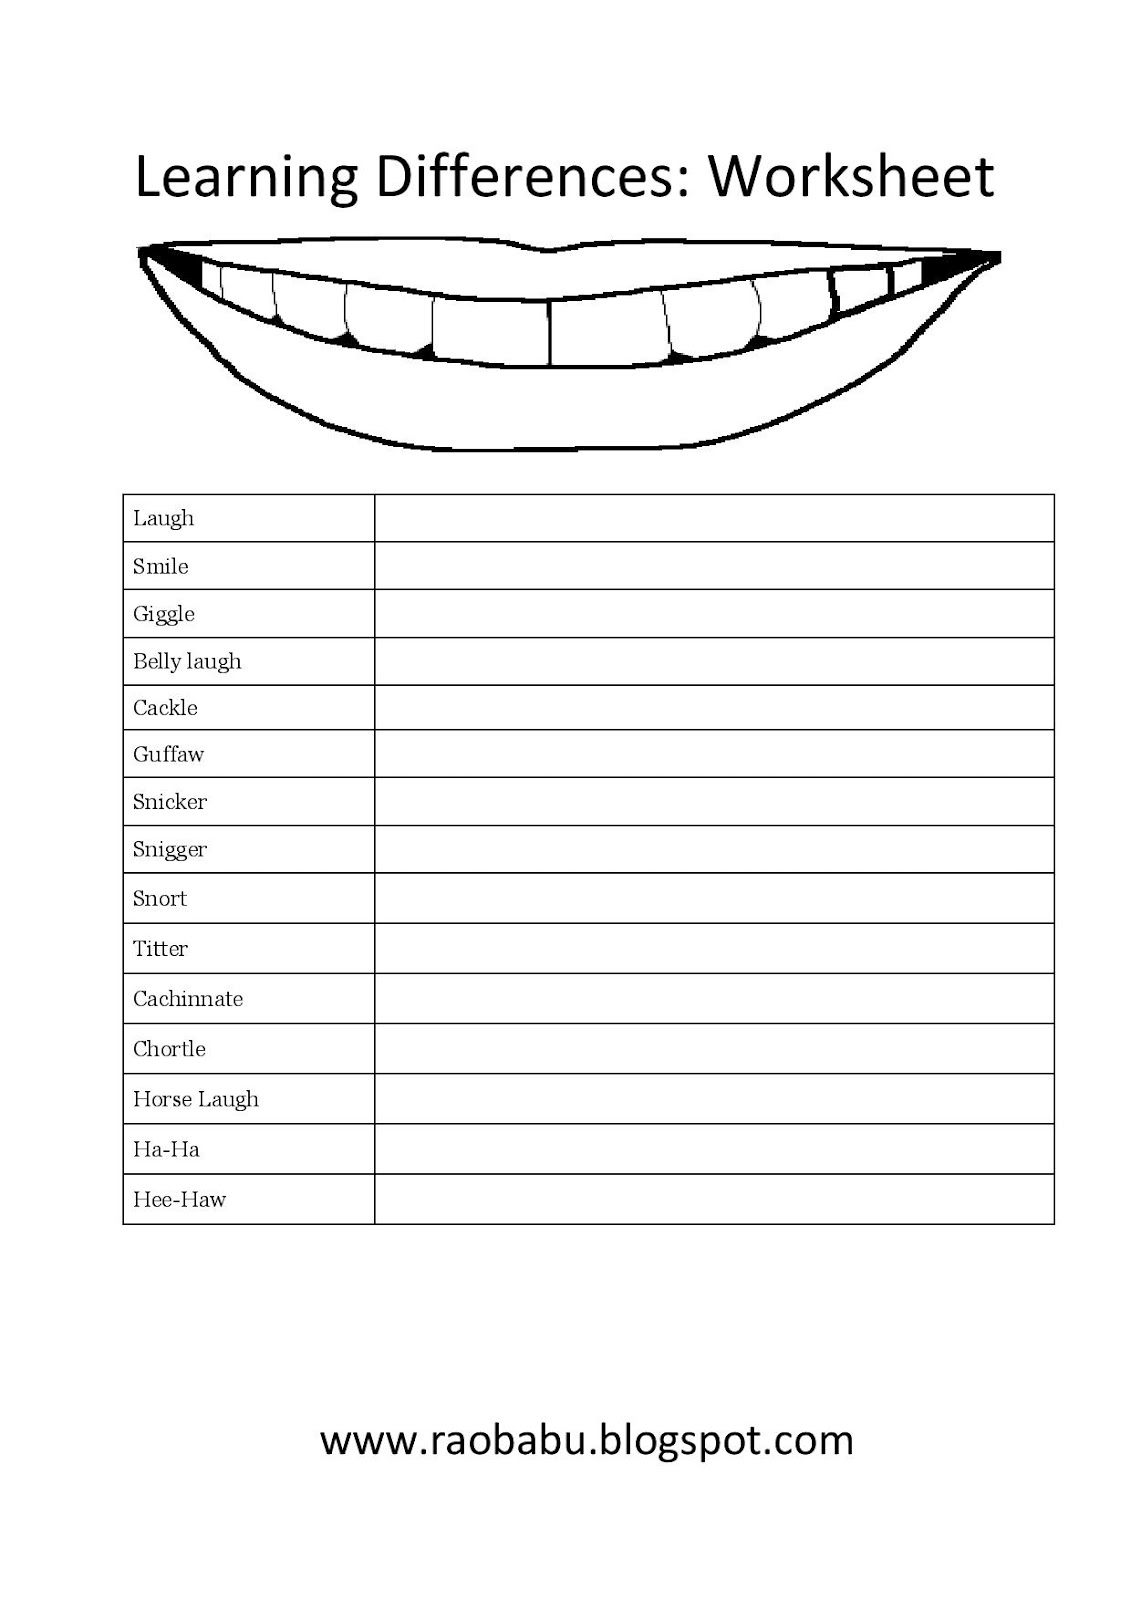 Free Worksheets For Learning English